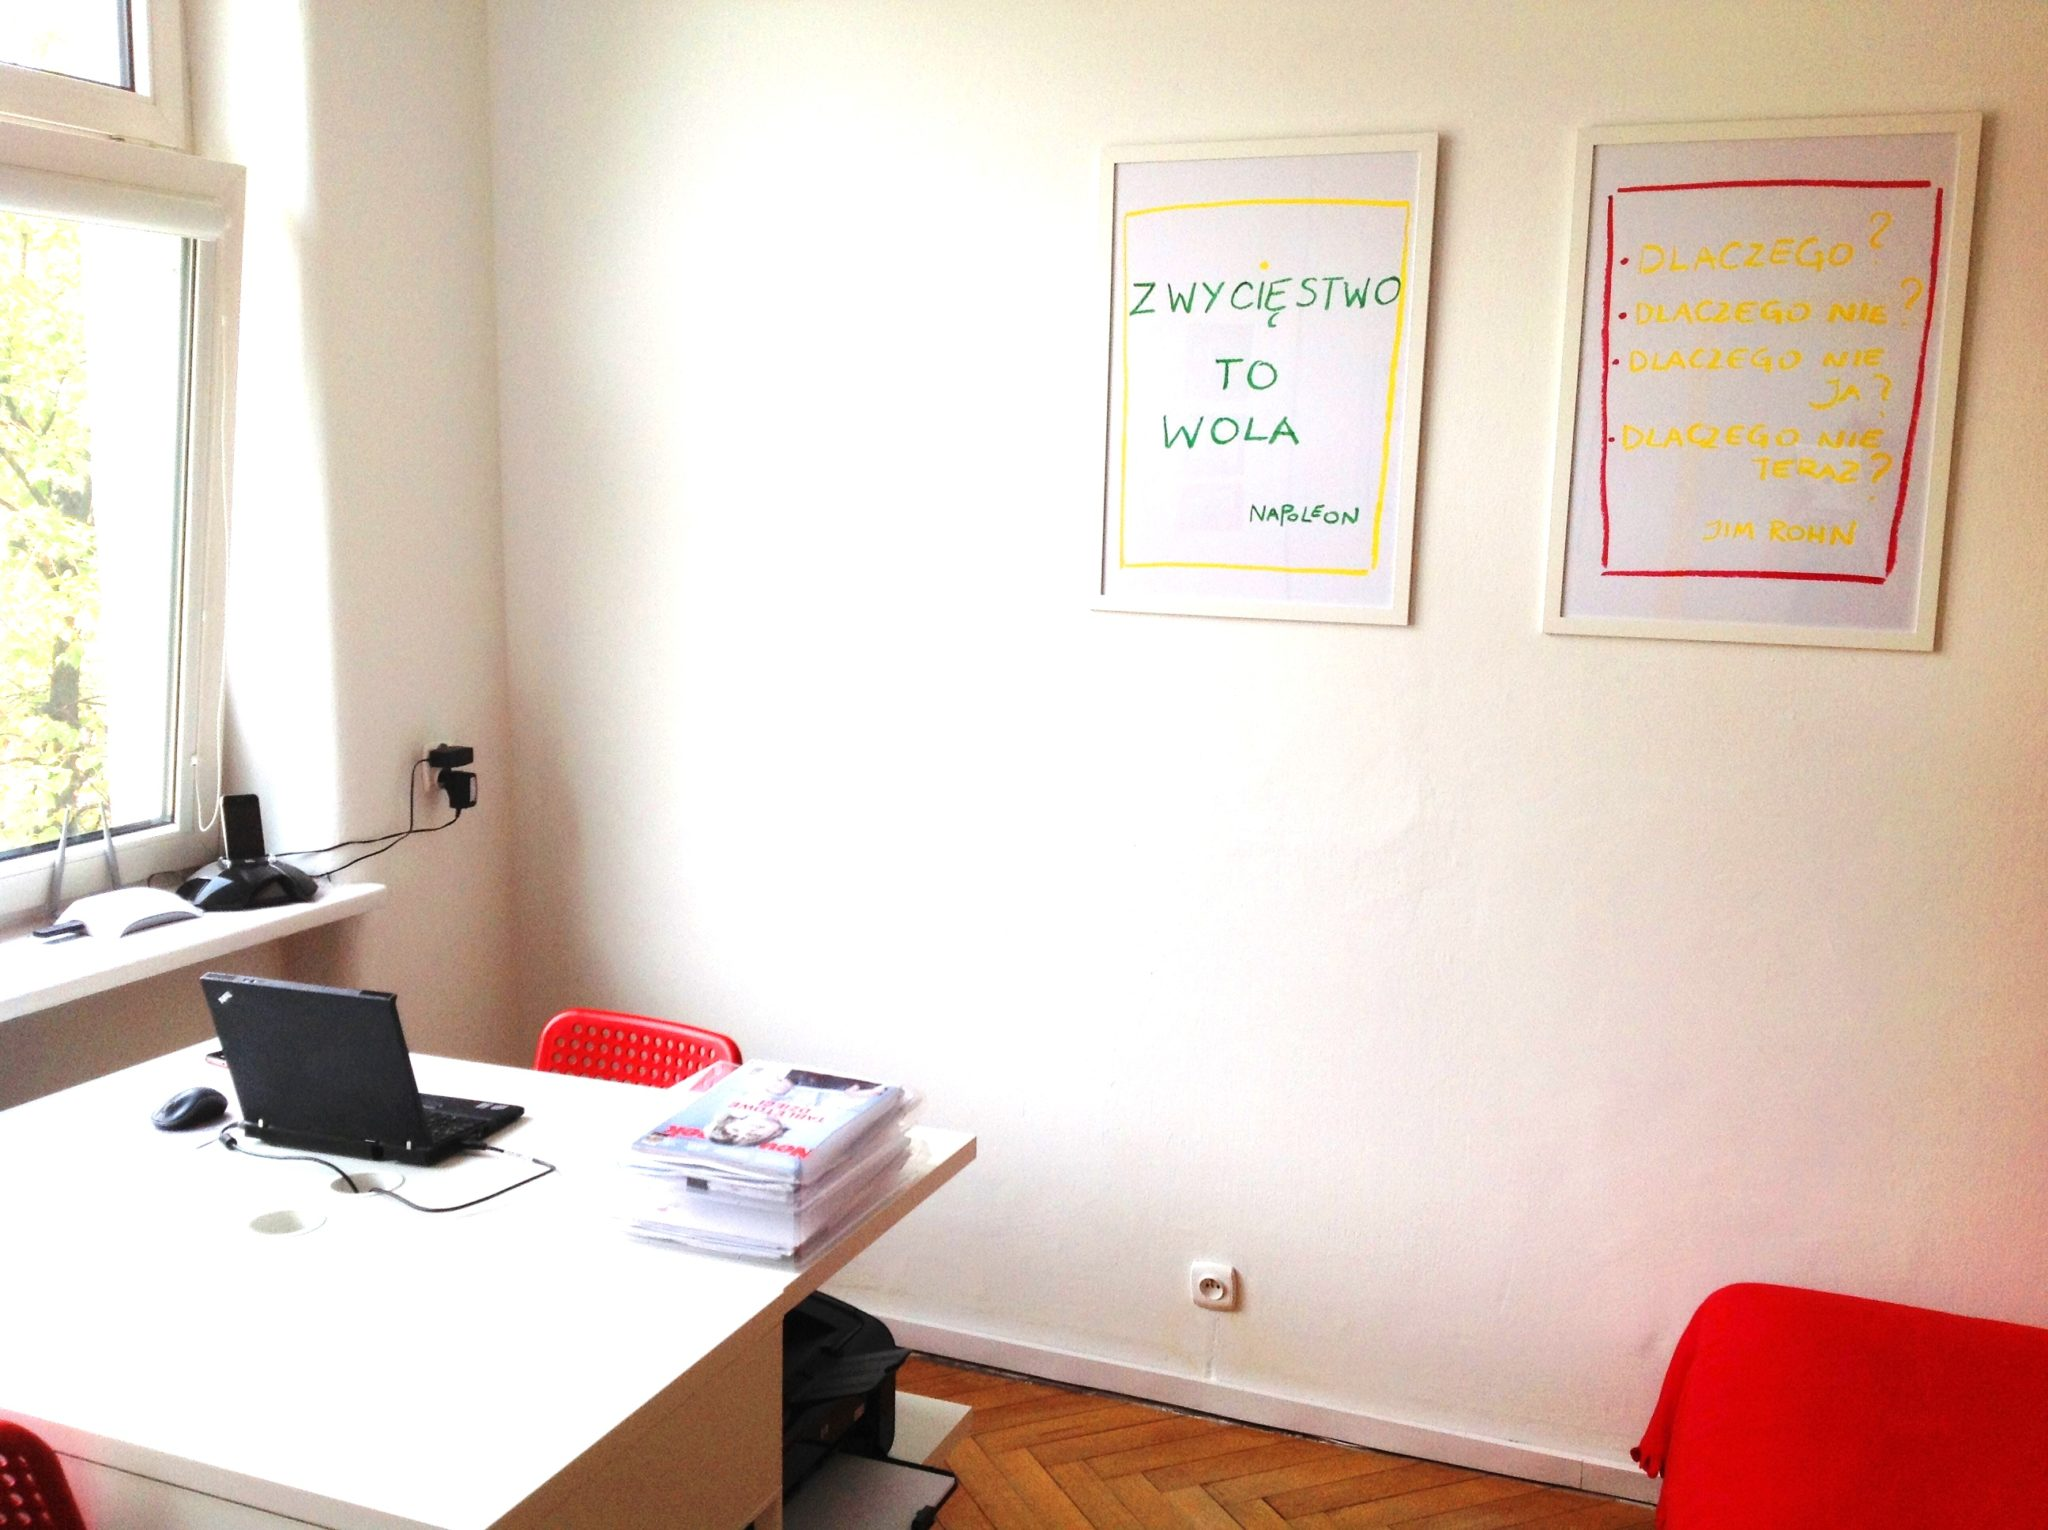 11 projekt wnetrza male kolorowe biuro interior design small colorful office google style forelementspl